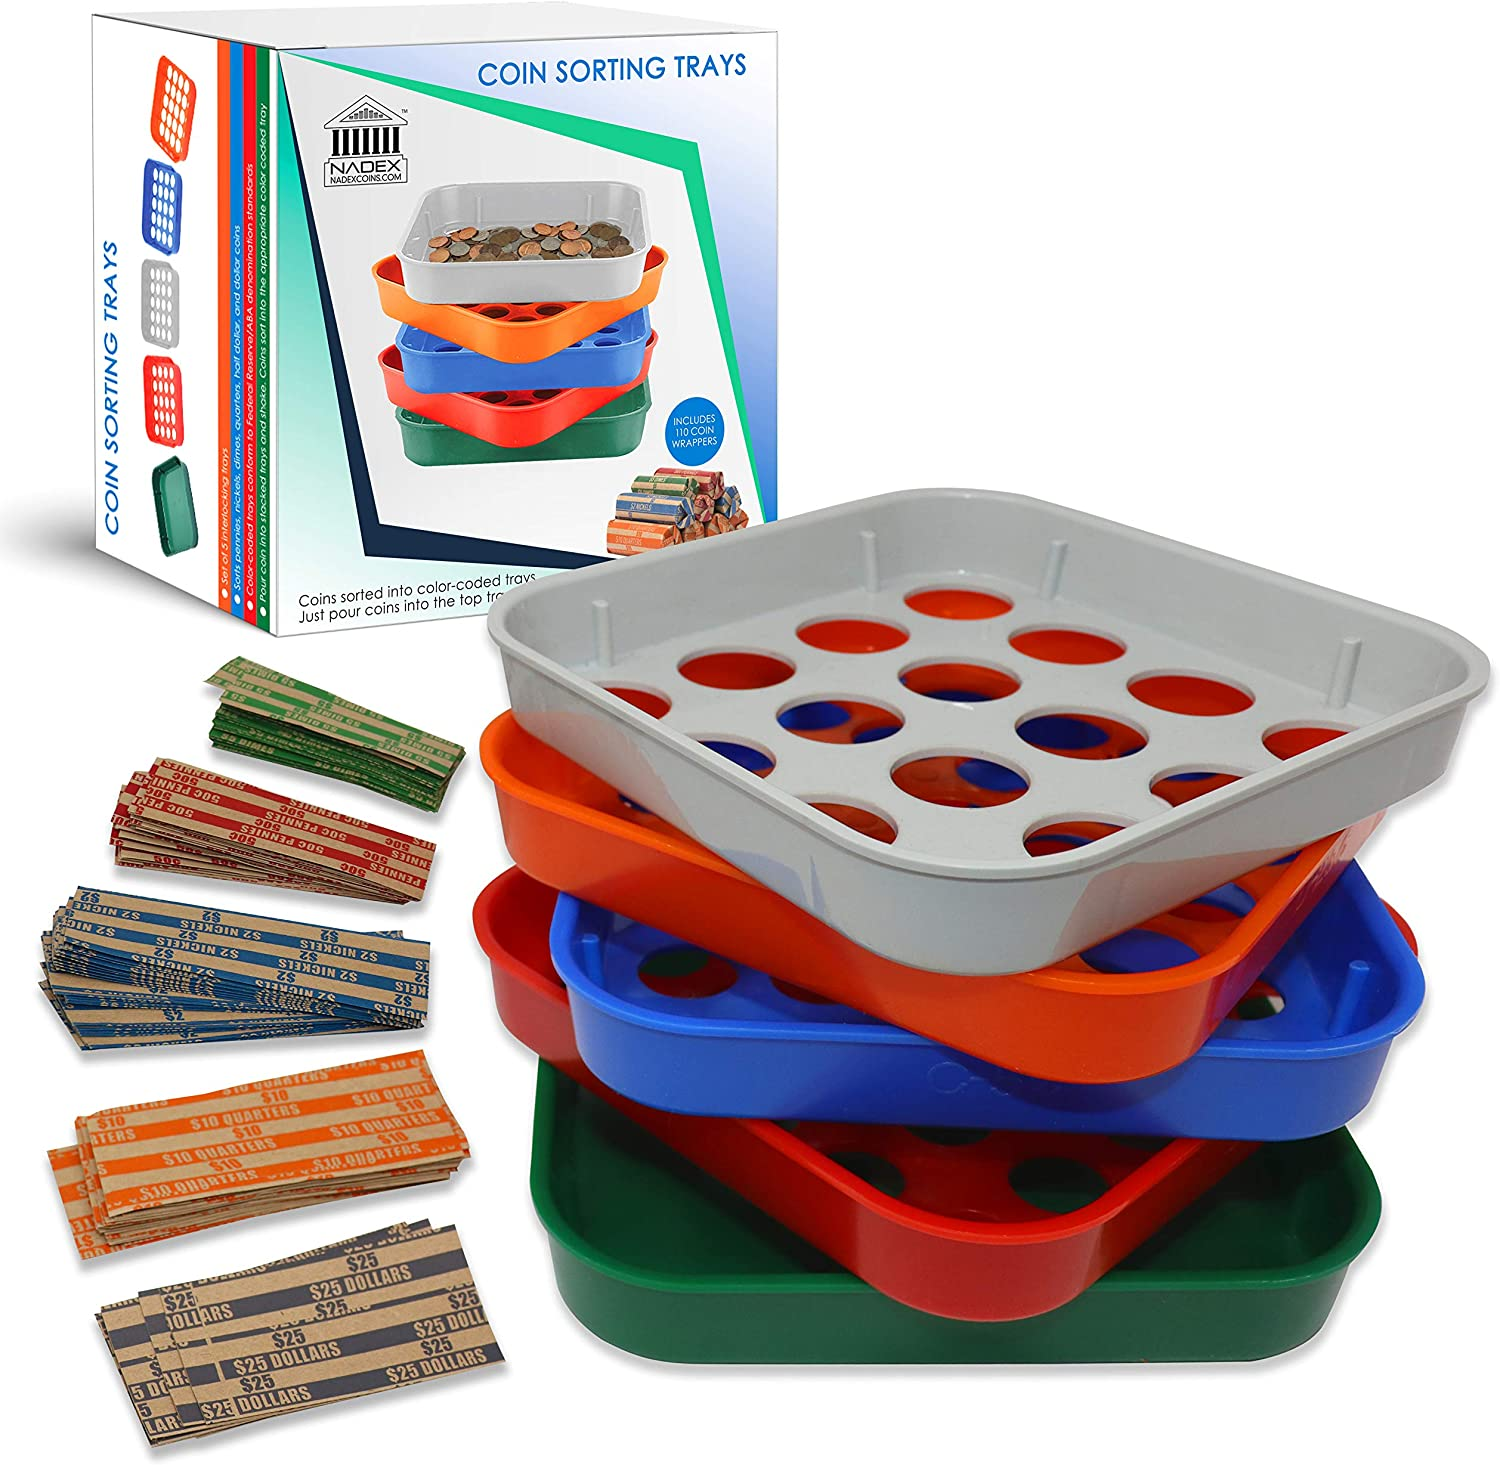 Nadex 5 Quick Sort Coin Organizing Trays | Color Coded Sorting Trays for Pennies, Nickels, Dimes, Quarters and Dollar Coins - 110 Coin Wrappers Included